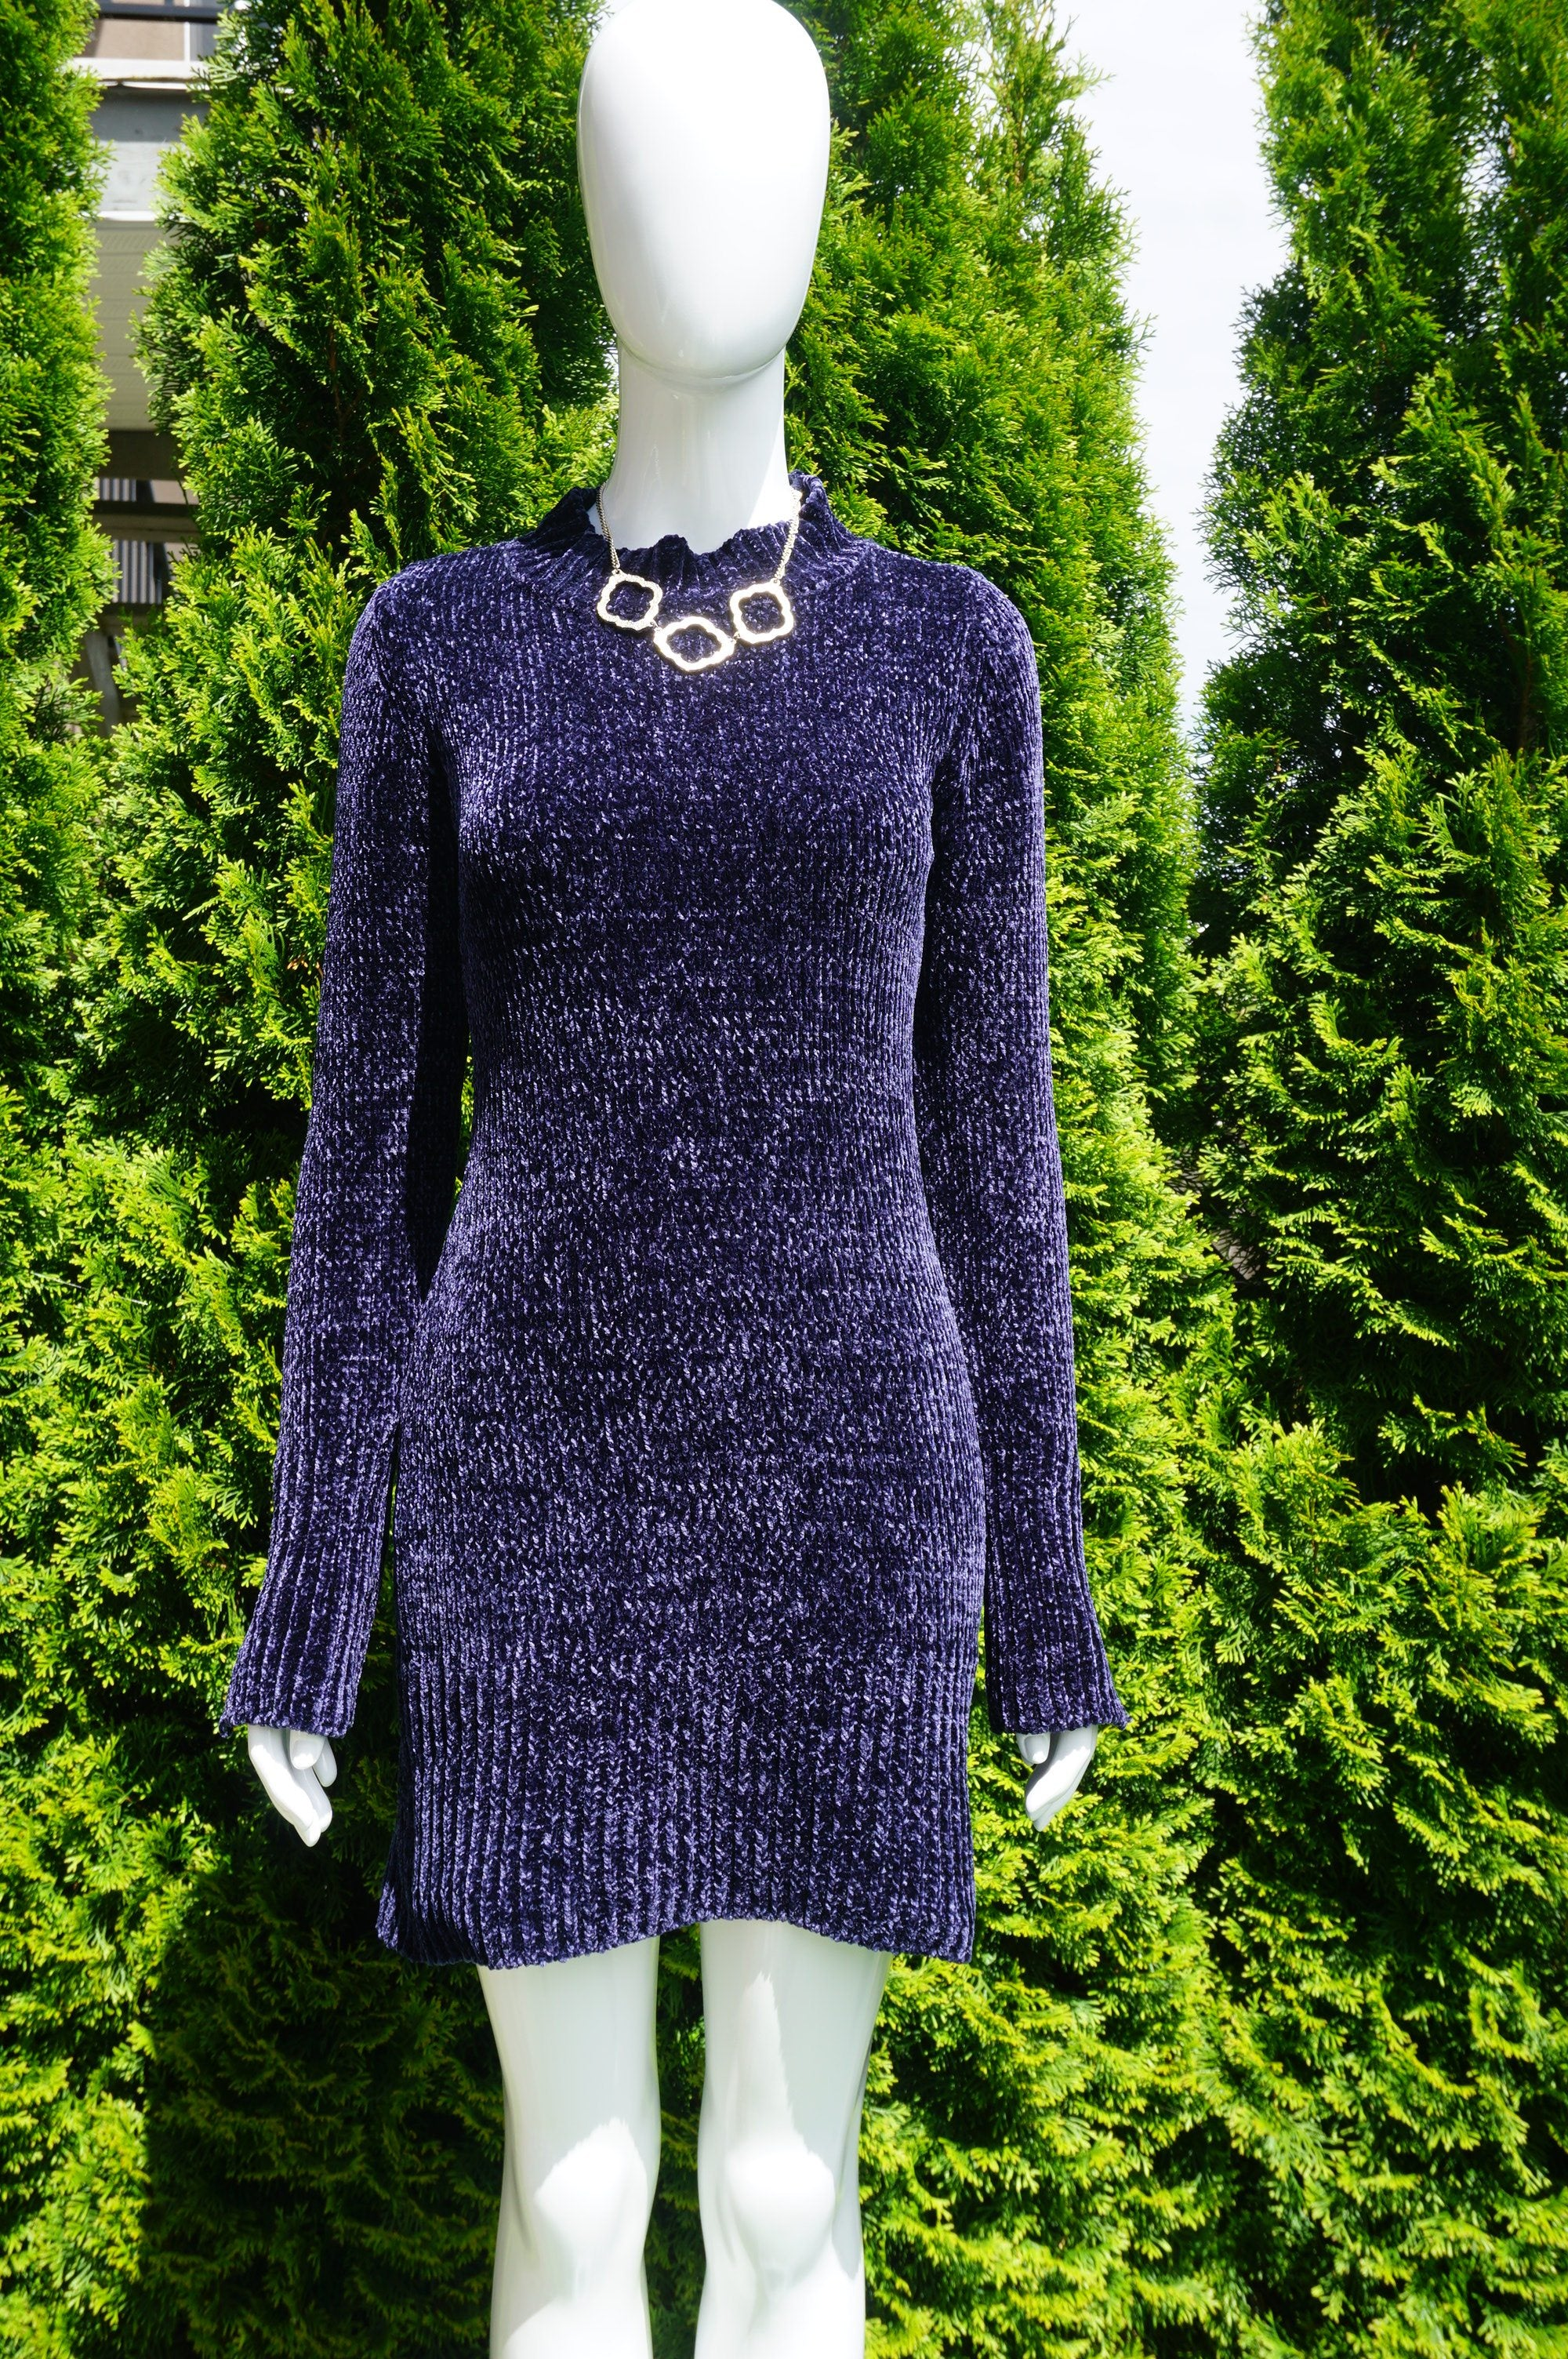 Dynamite Dynamite Mock Neck Sweater Dress with Sultry Open Back, Super soft velvety texture. Perfect for the holiday season. Definitely the opposite of an ugly sweater., Blue, 100% Polyester, women's Dresses & Rompers, women's Blue Dresses & Rompers, Dynamite women's Dresses & Rompers, sweater dress, long sweater, velvet sweater, holiday sweater, open back sweater dress,